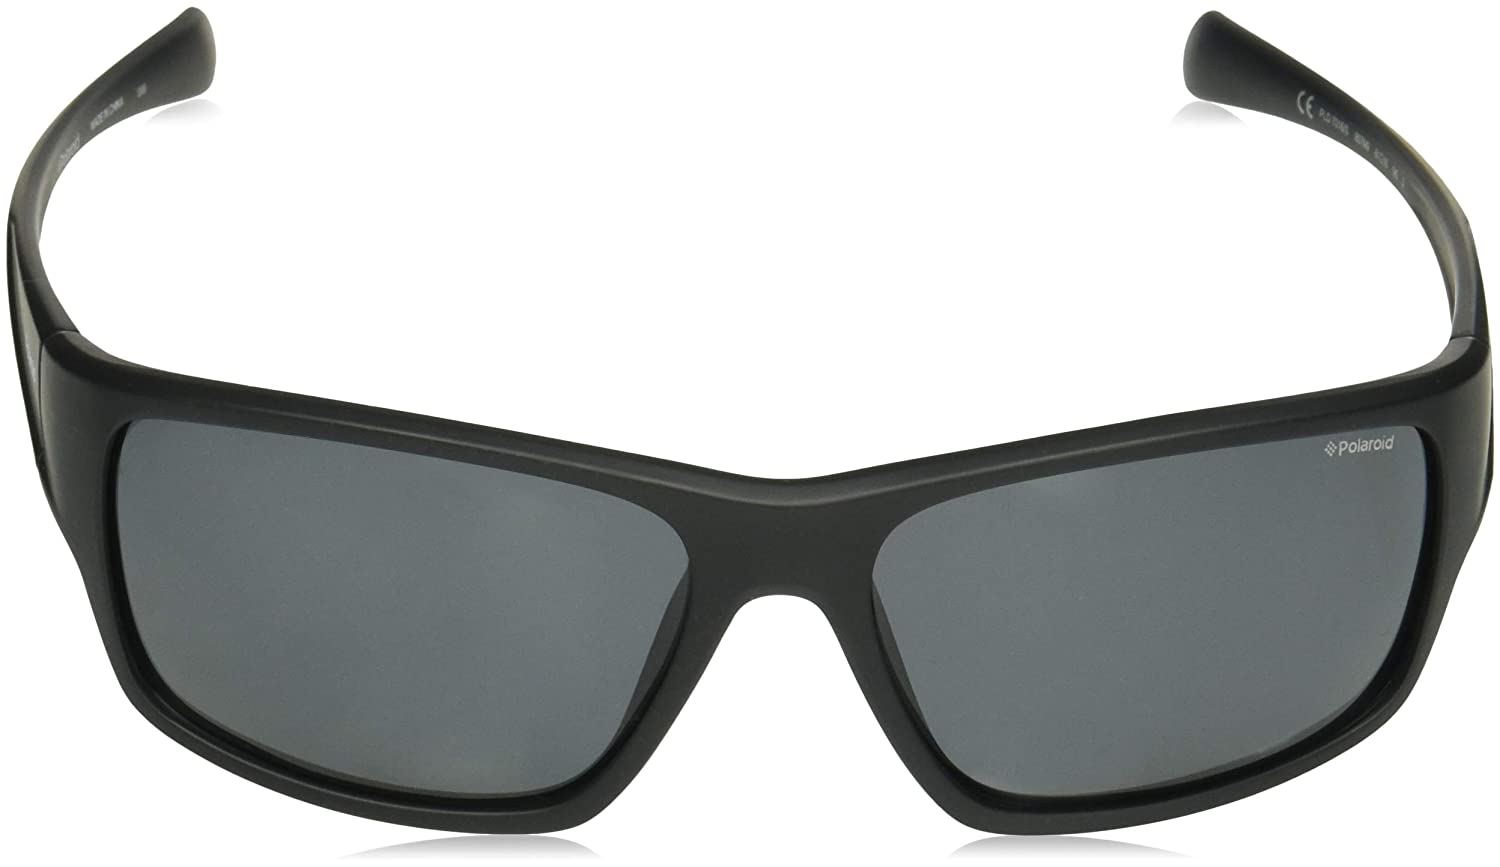 e5e2d83c9618 Amazon.com  Polaroid Sunglasses Men s Pld7016s Polarized Rectangular  Sunglasses BLACK 61 mm  Clothing